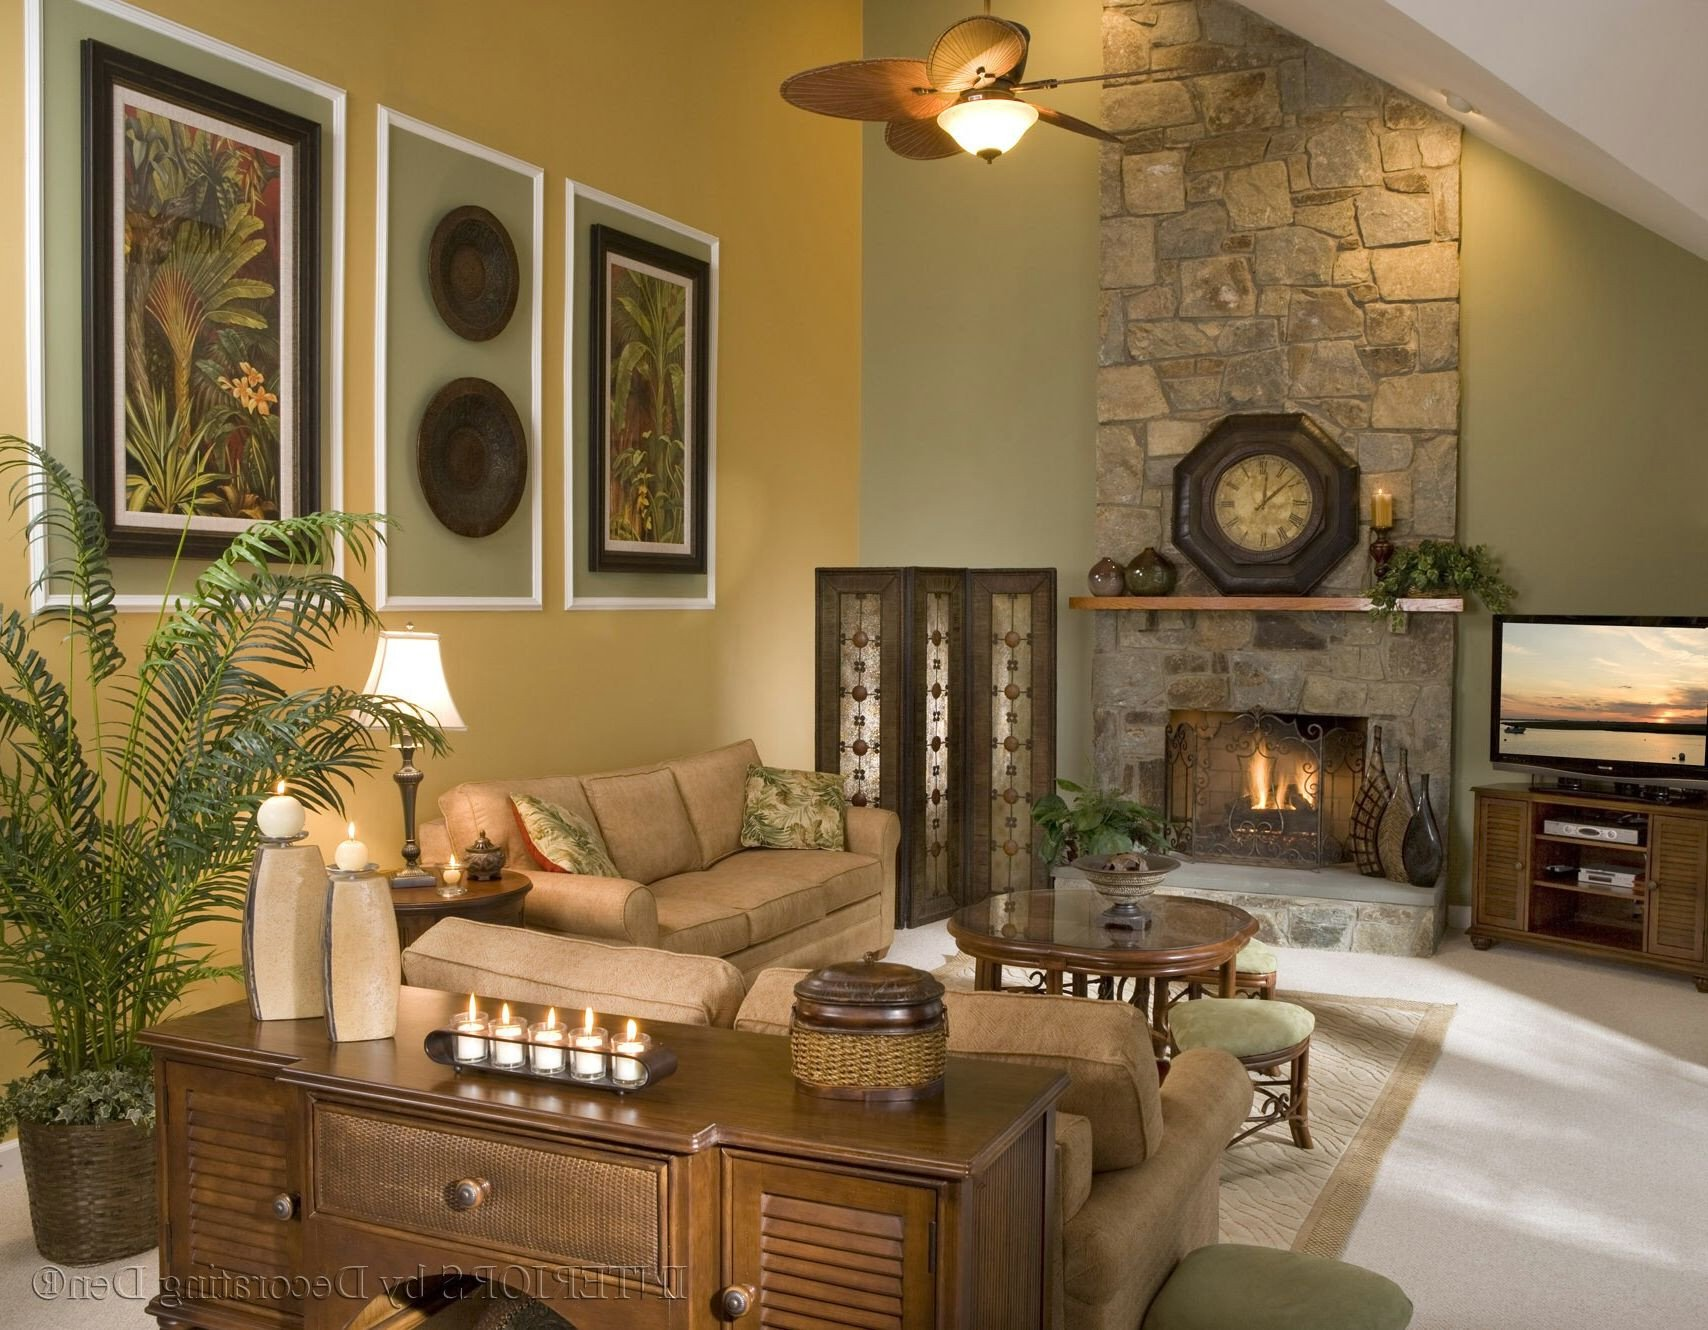 Living Room Wall Decorating Ideas 38 Wall Decorating Ideas for Family Room Living Room Wall